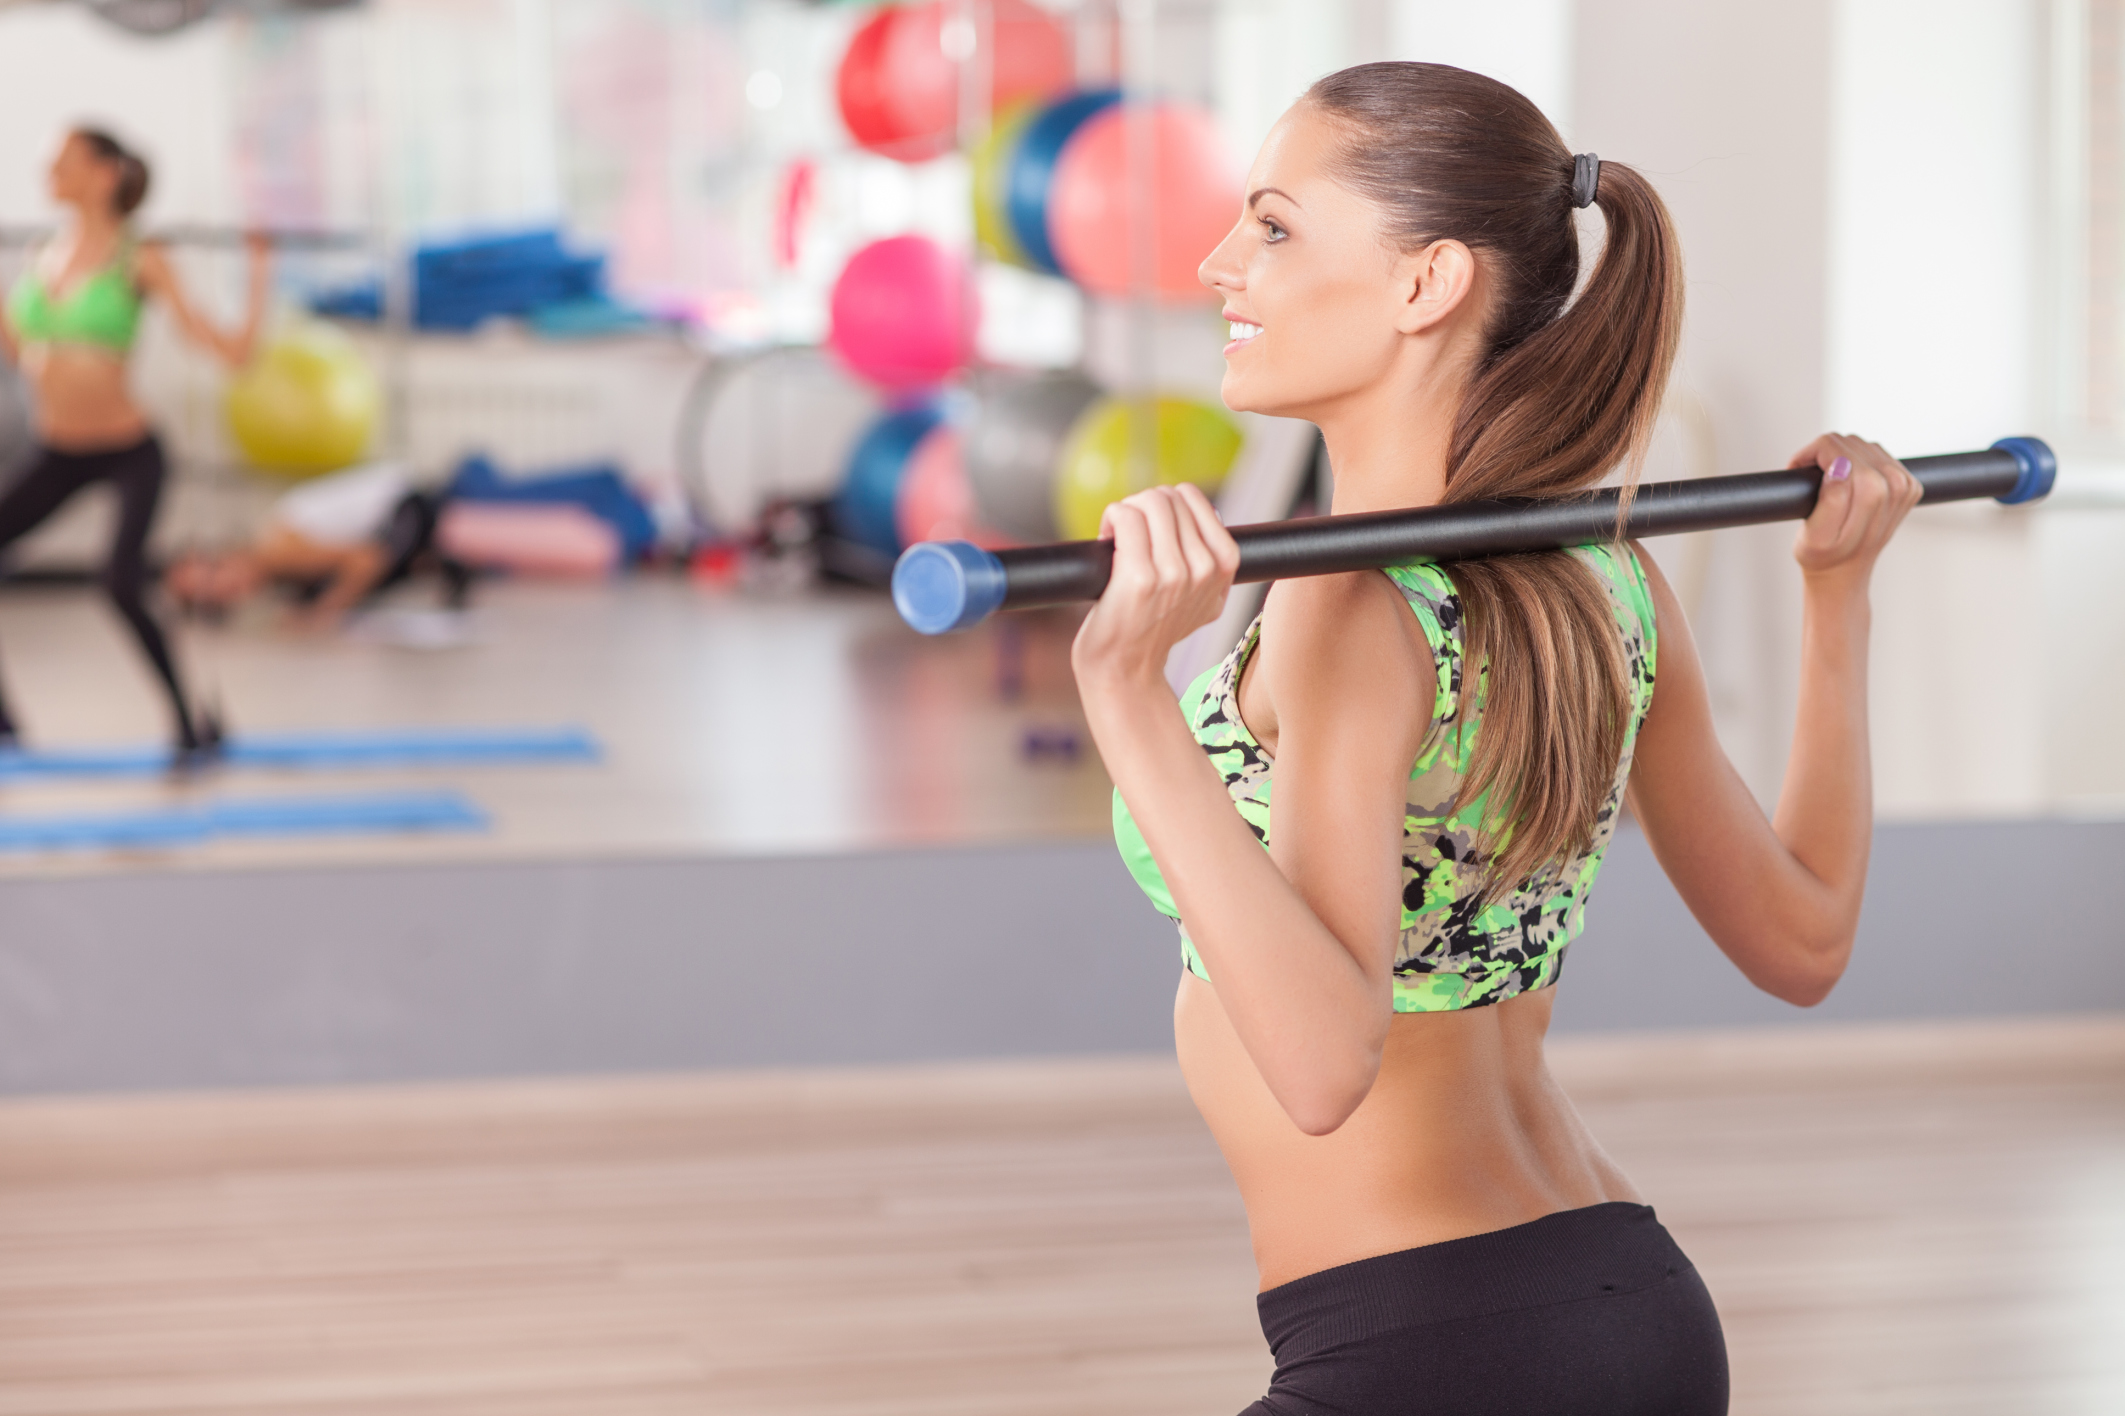 Free Weight Arm Exercises for Women